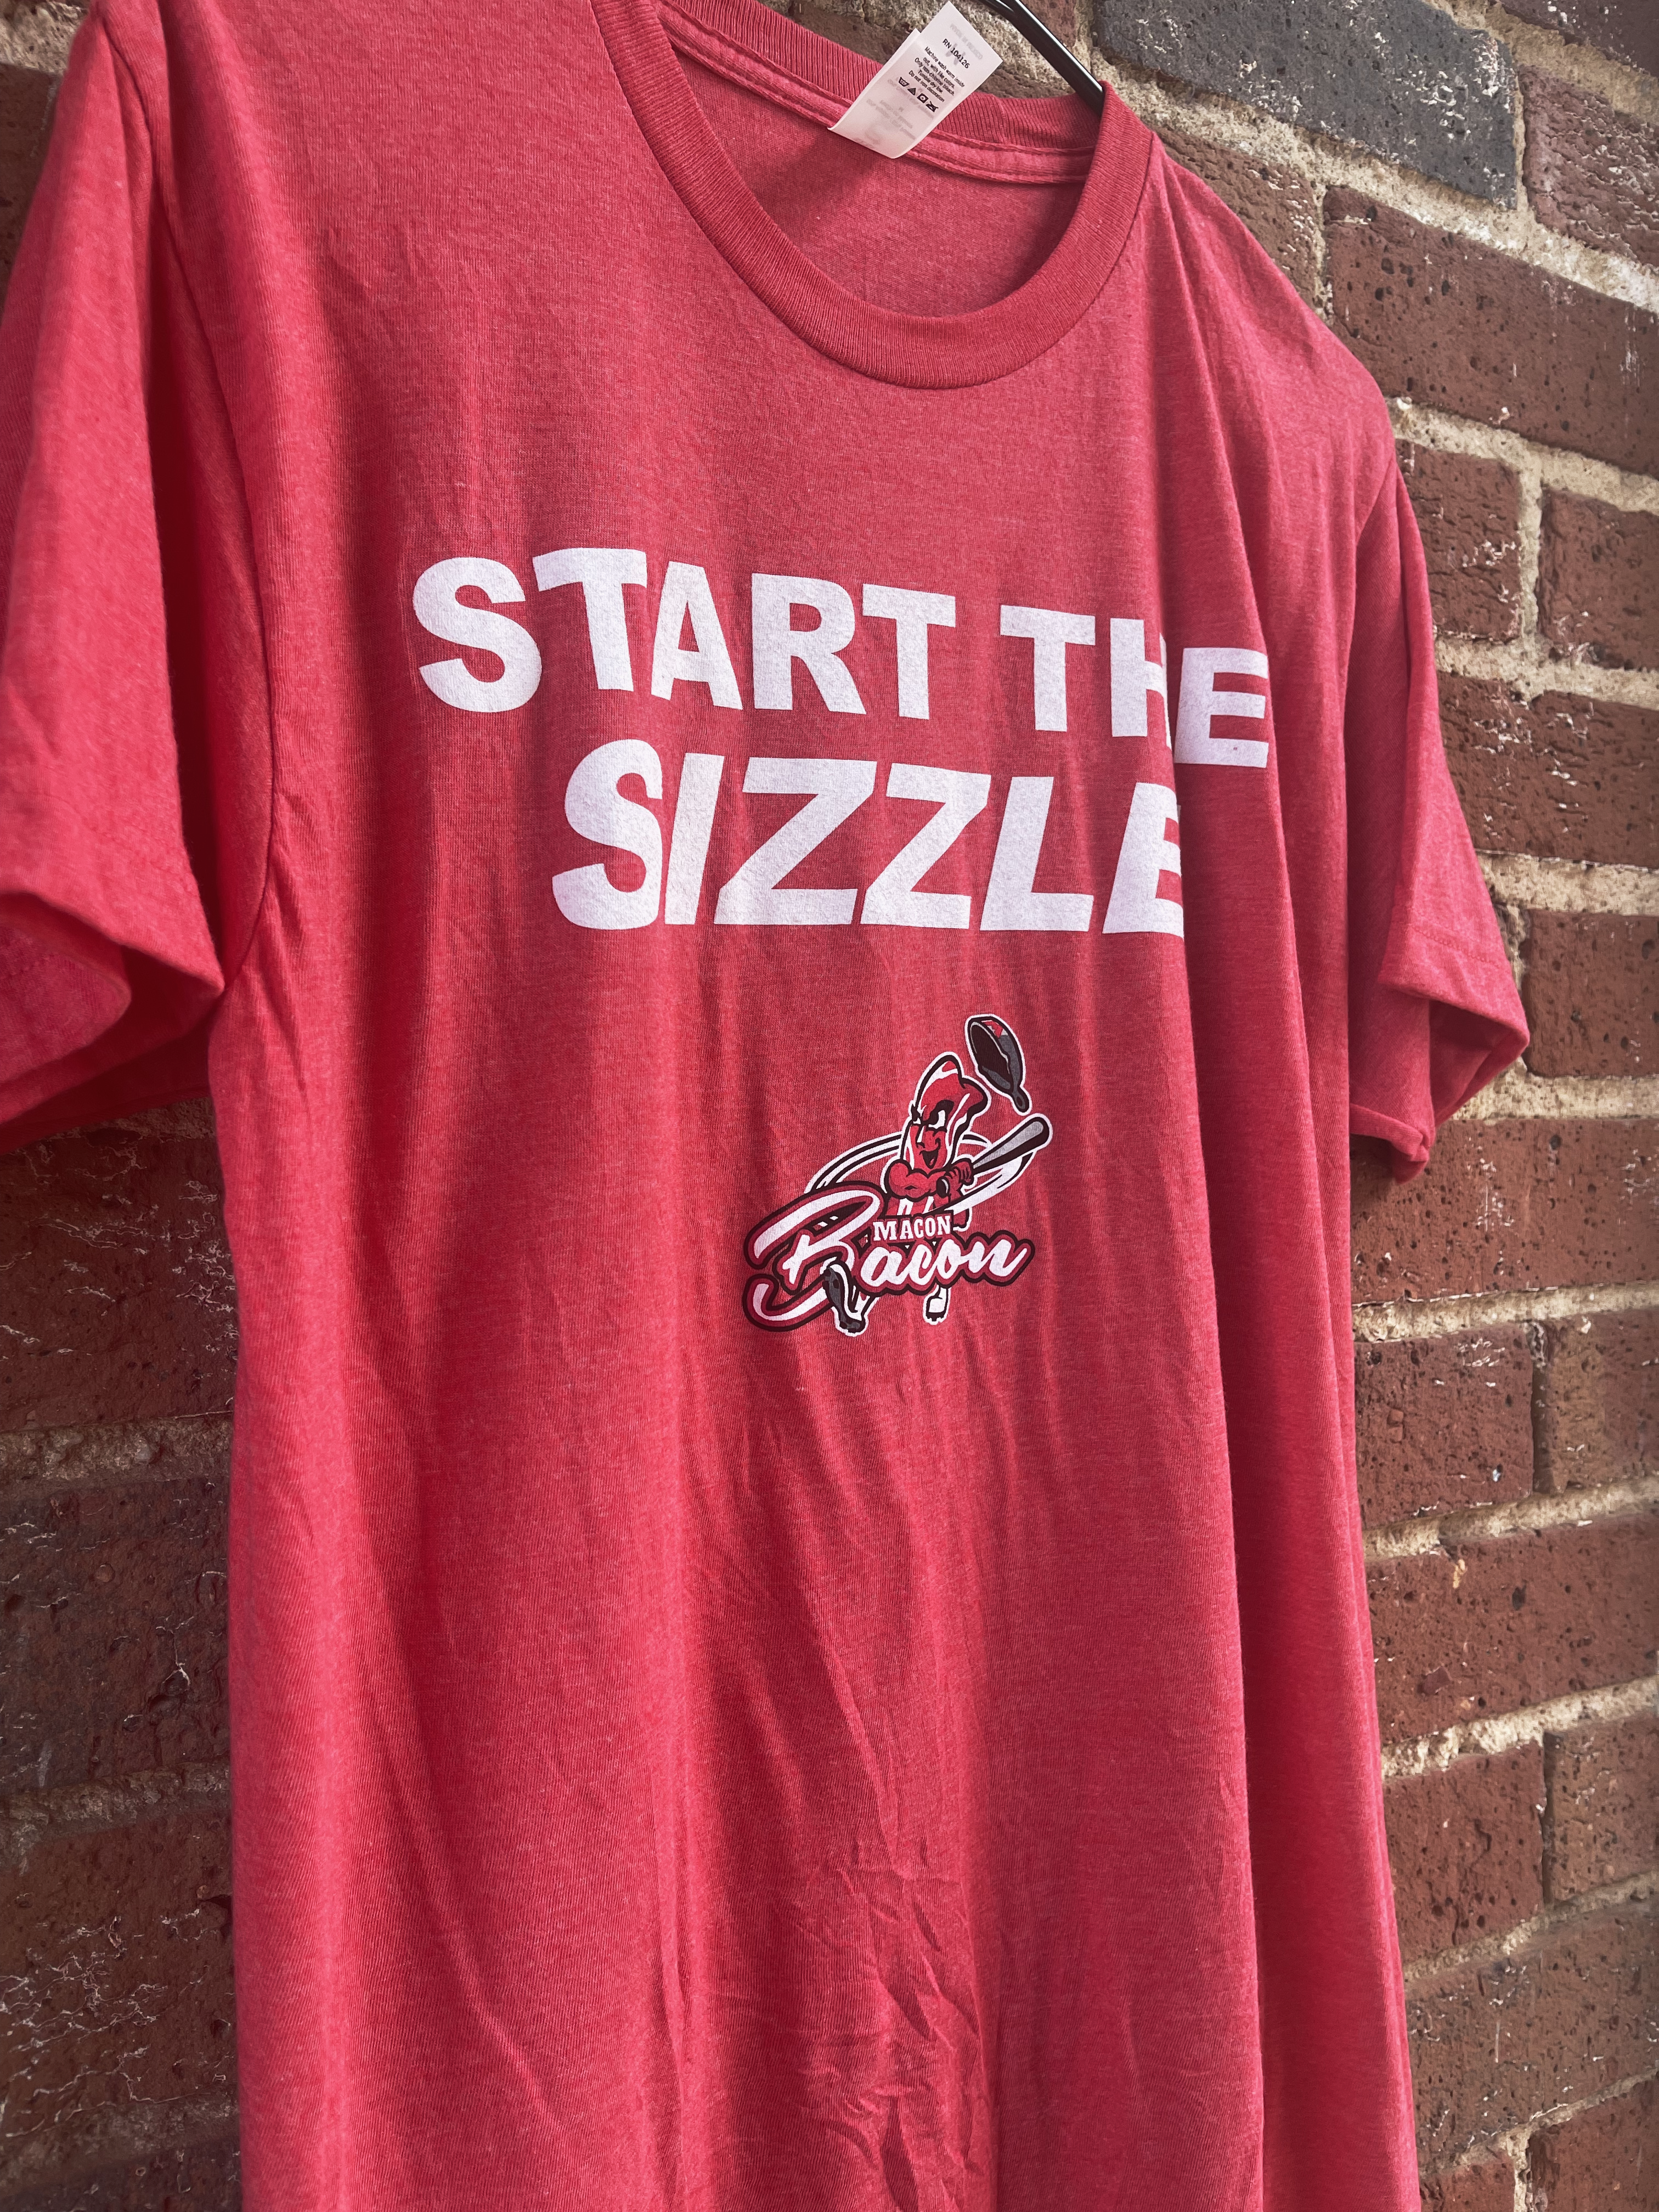 Start the Sizzle t-shirt in red